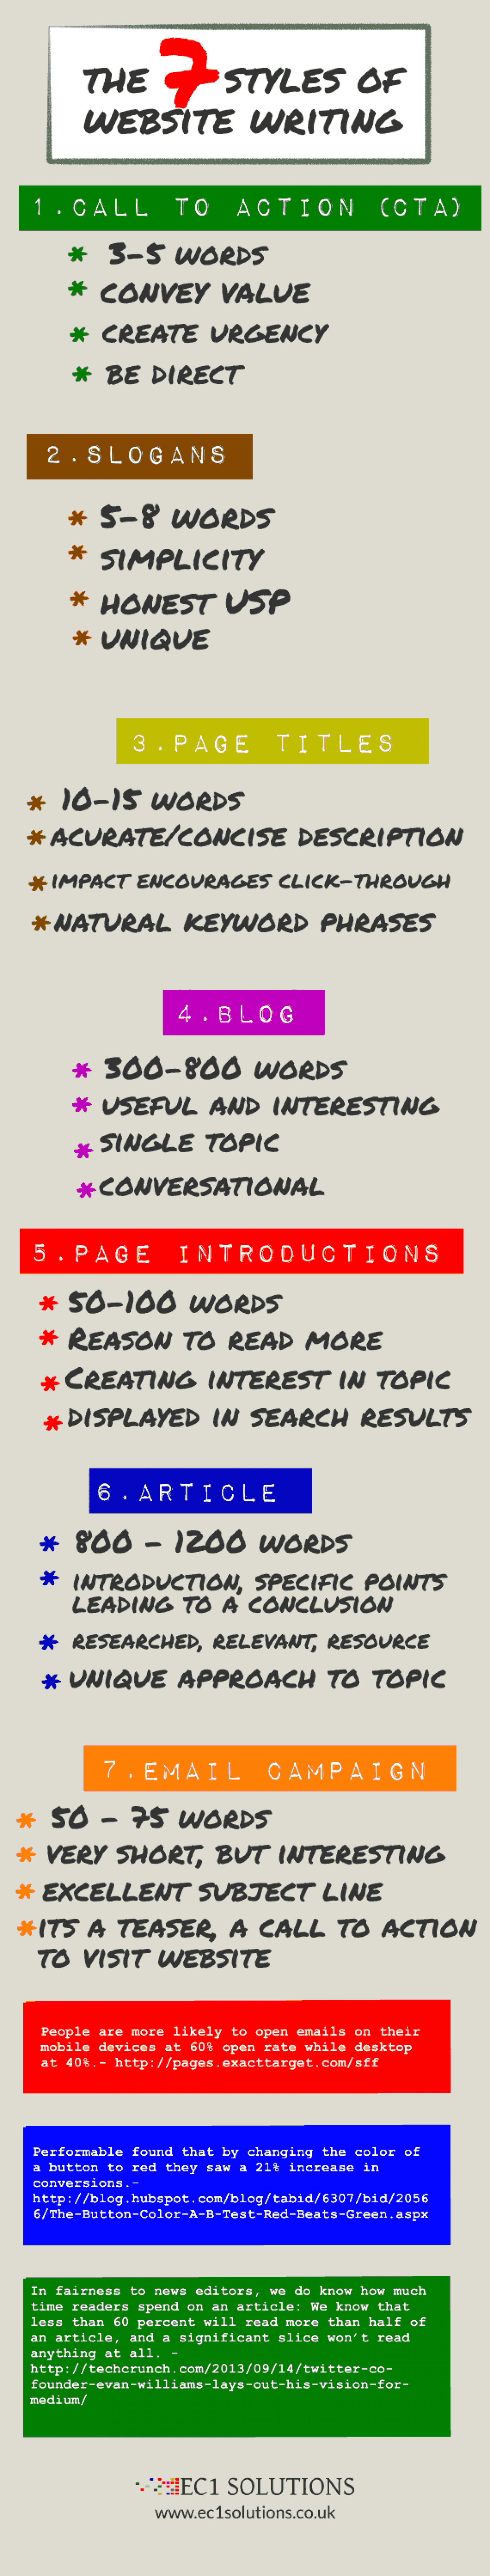 The 7 Styles of Website Writing Infographic